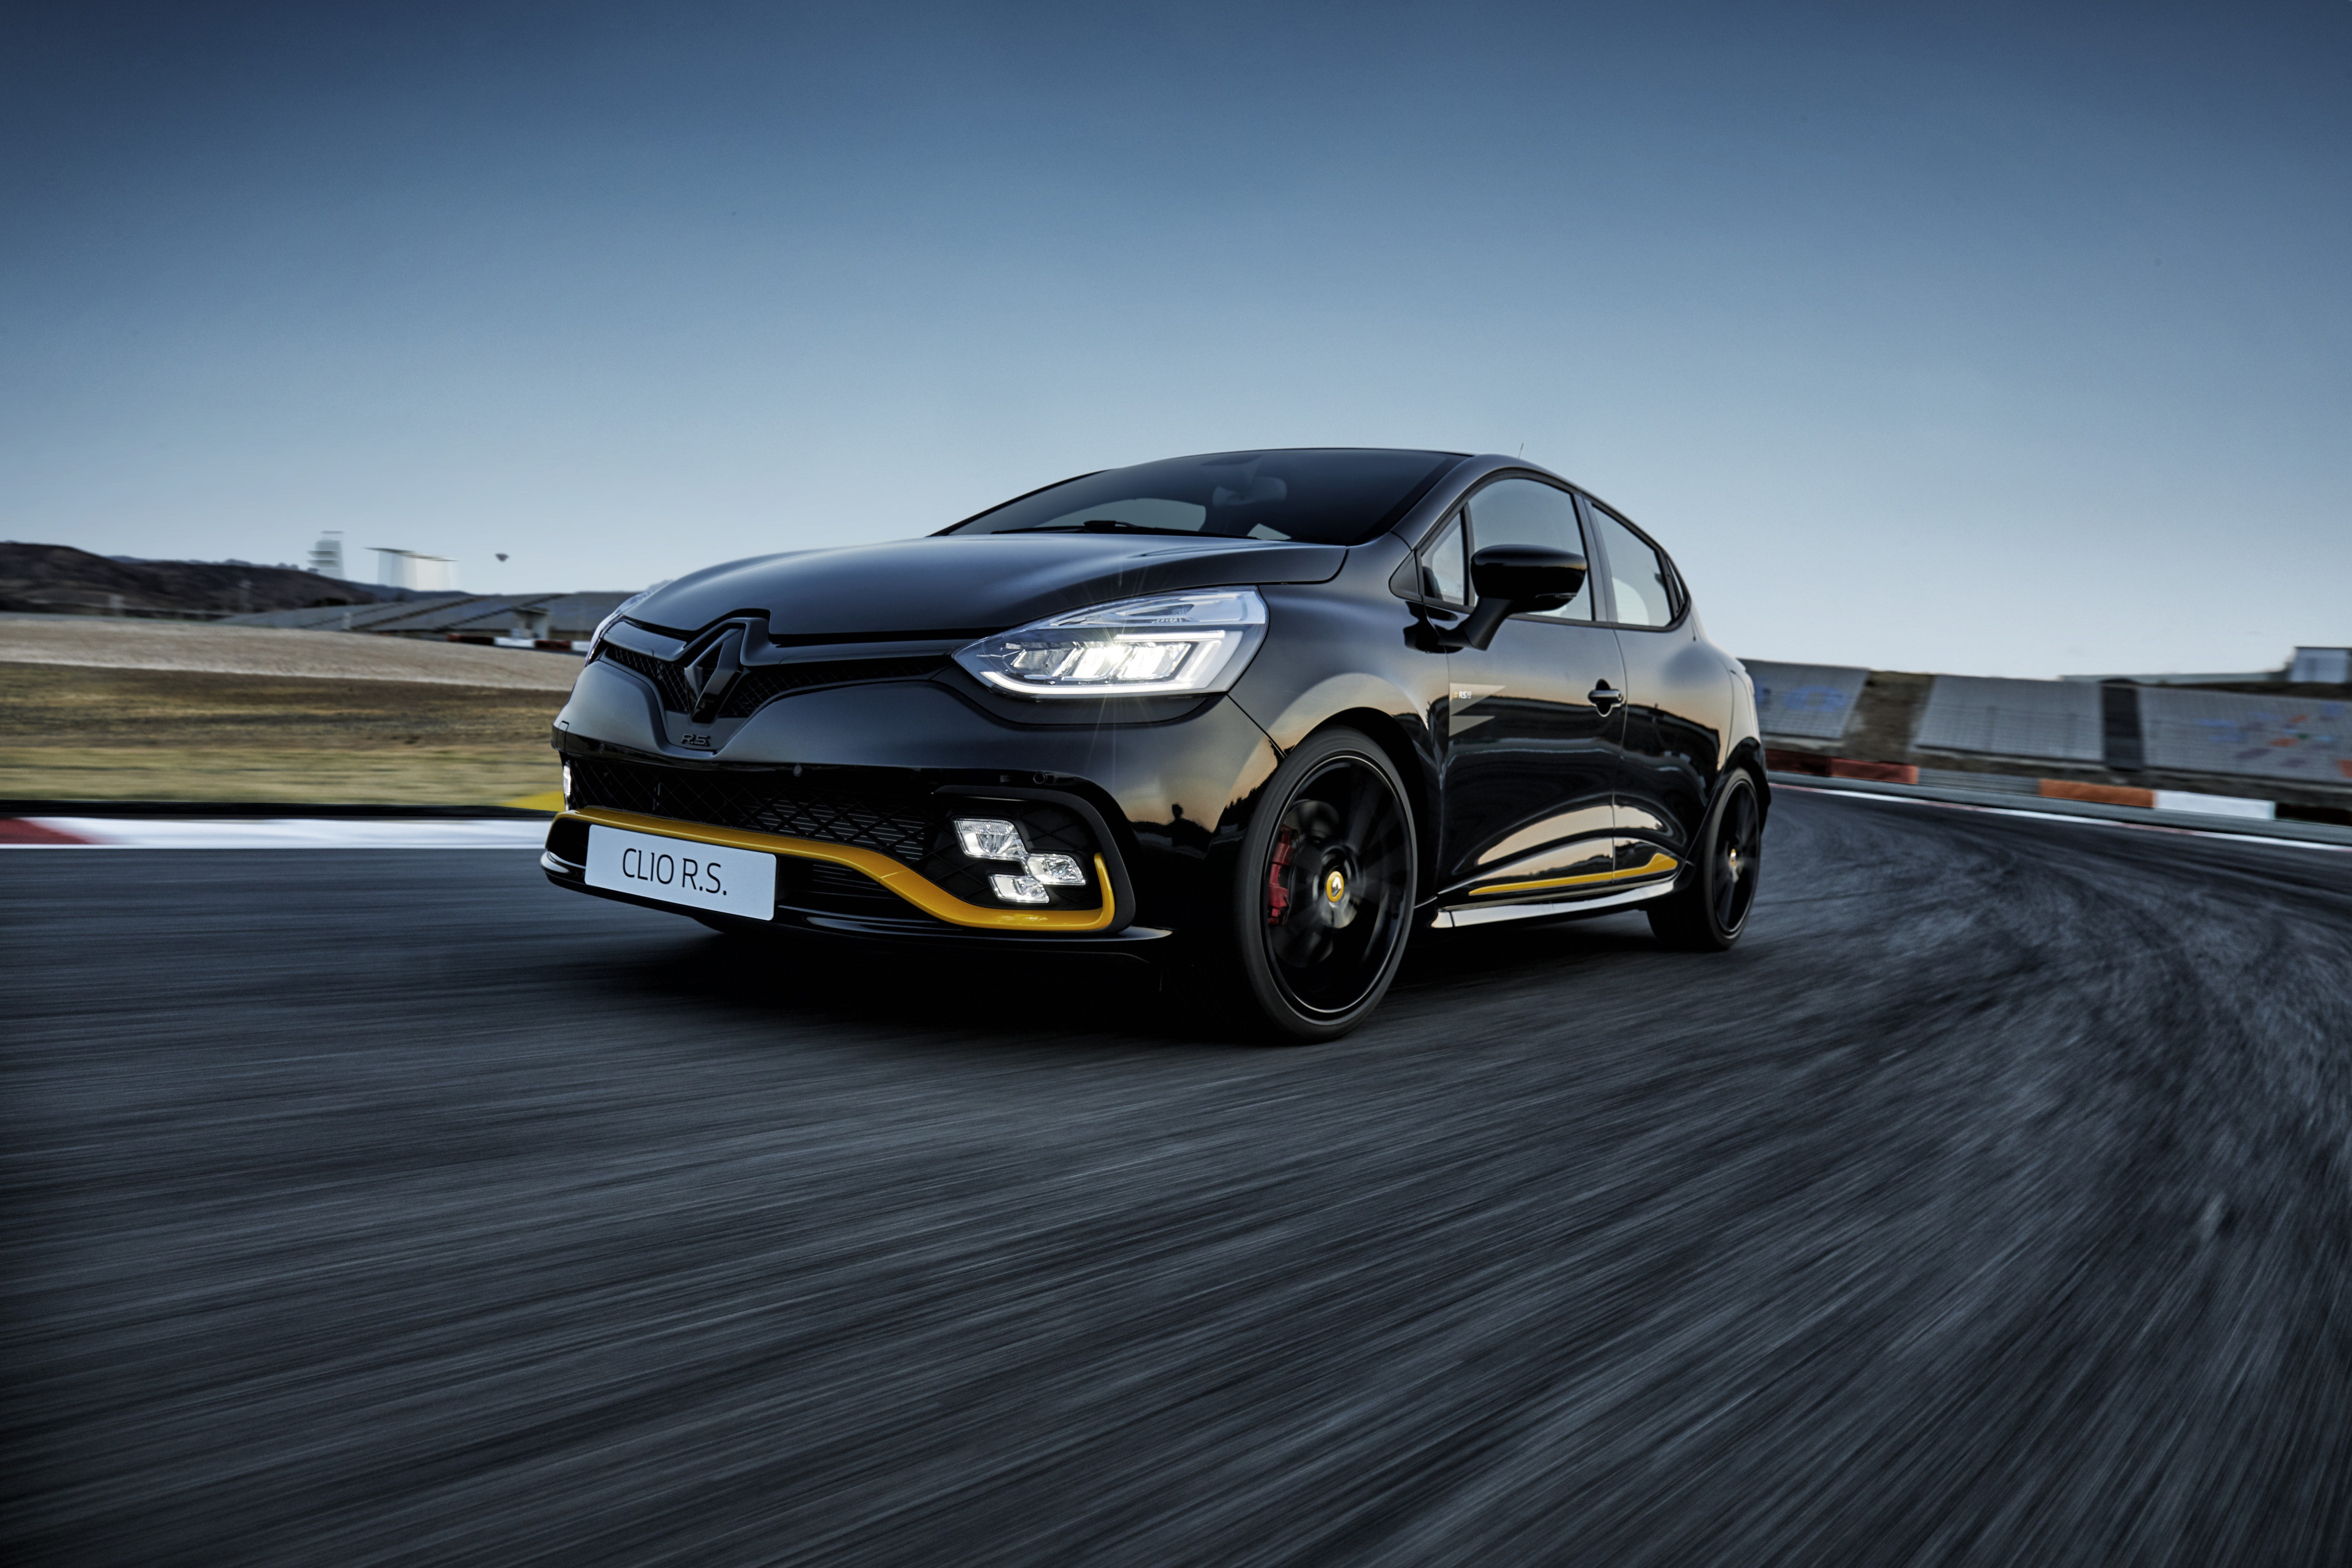 Renault Clio RS 18 F1: A mighty midget